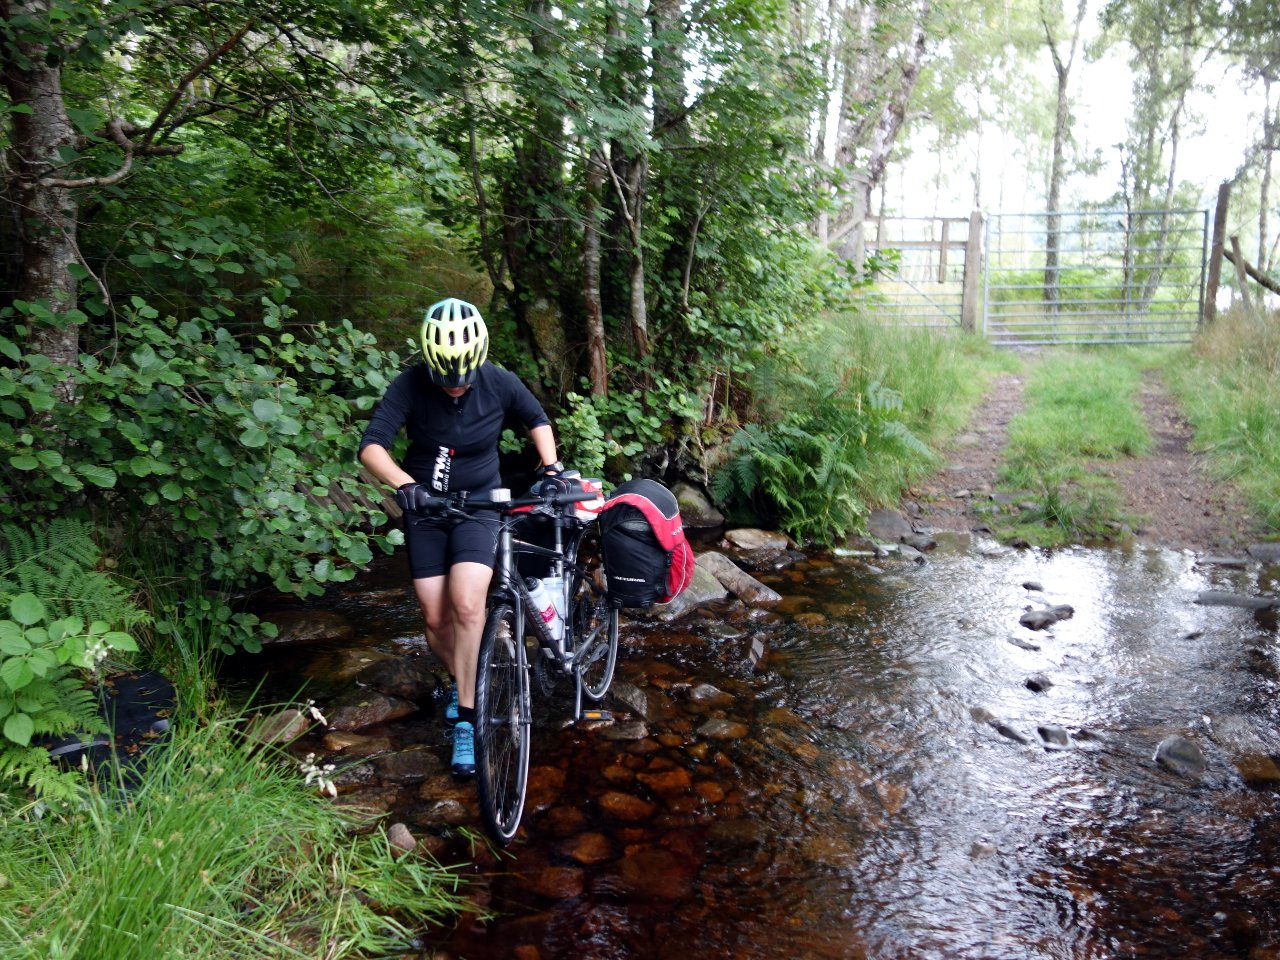 The trails were as rough as a badger's arse, and there was even a stream to ford